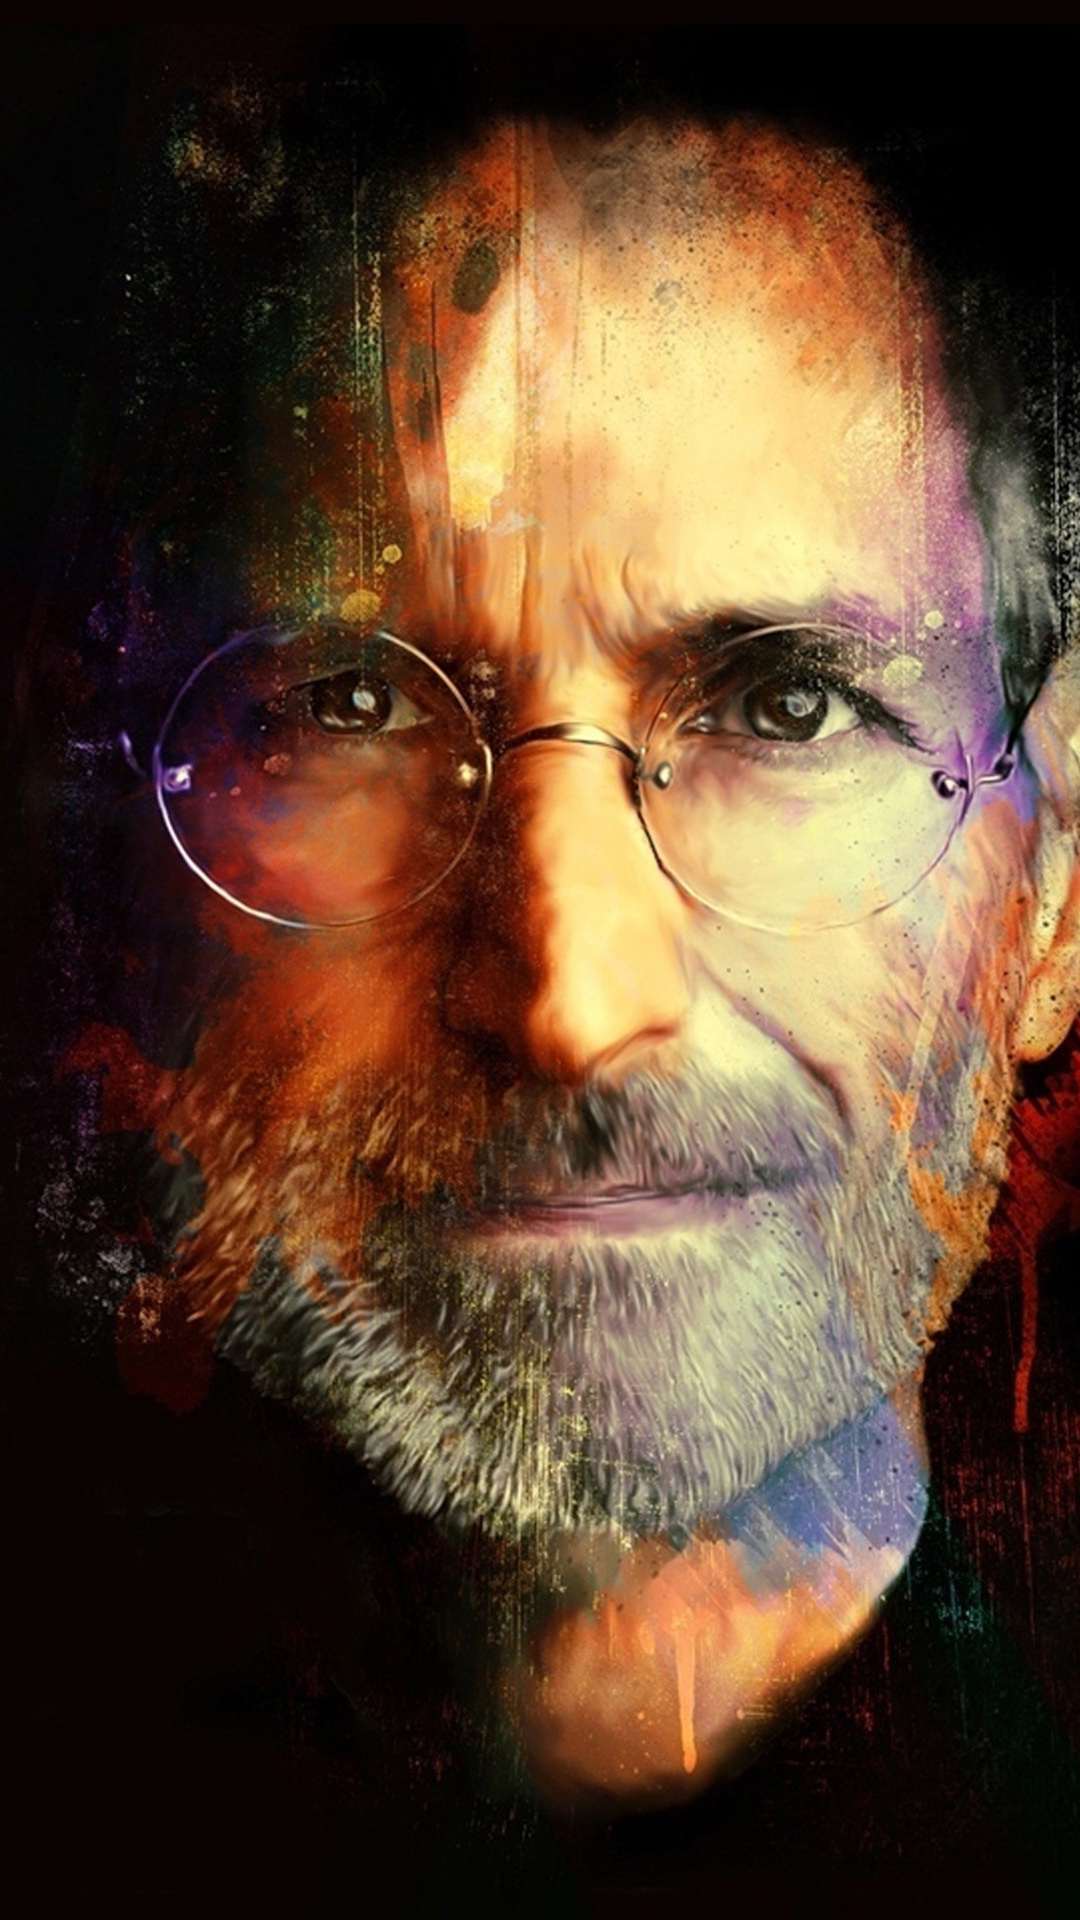 Steve jobs tribute wallpapers for iphone 6 and iphone 6 plus - Steve jobs wallpaper download ...